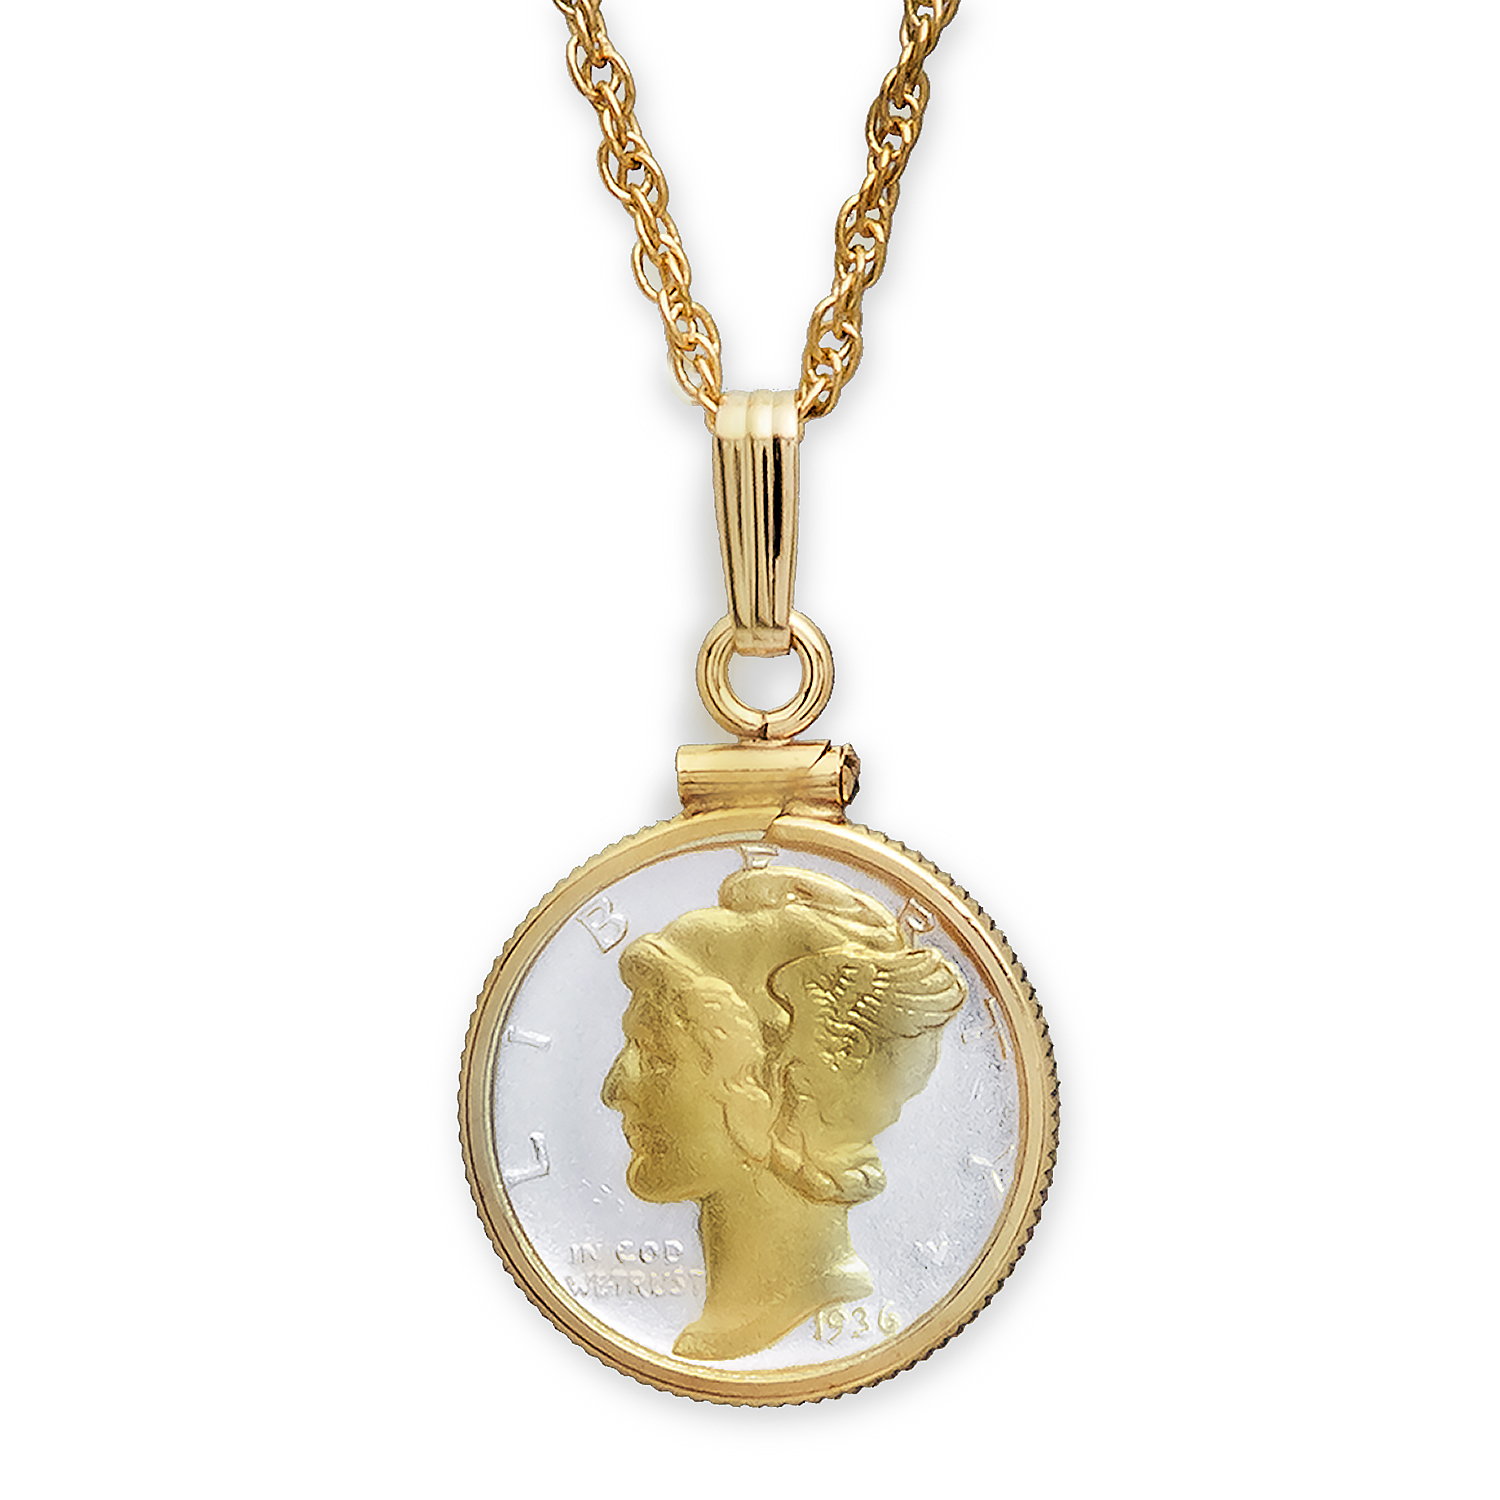 US Mercury Dime Necklace